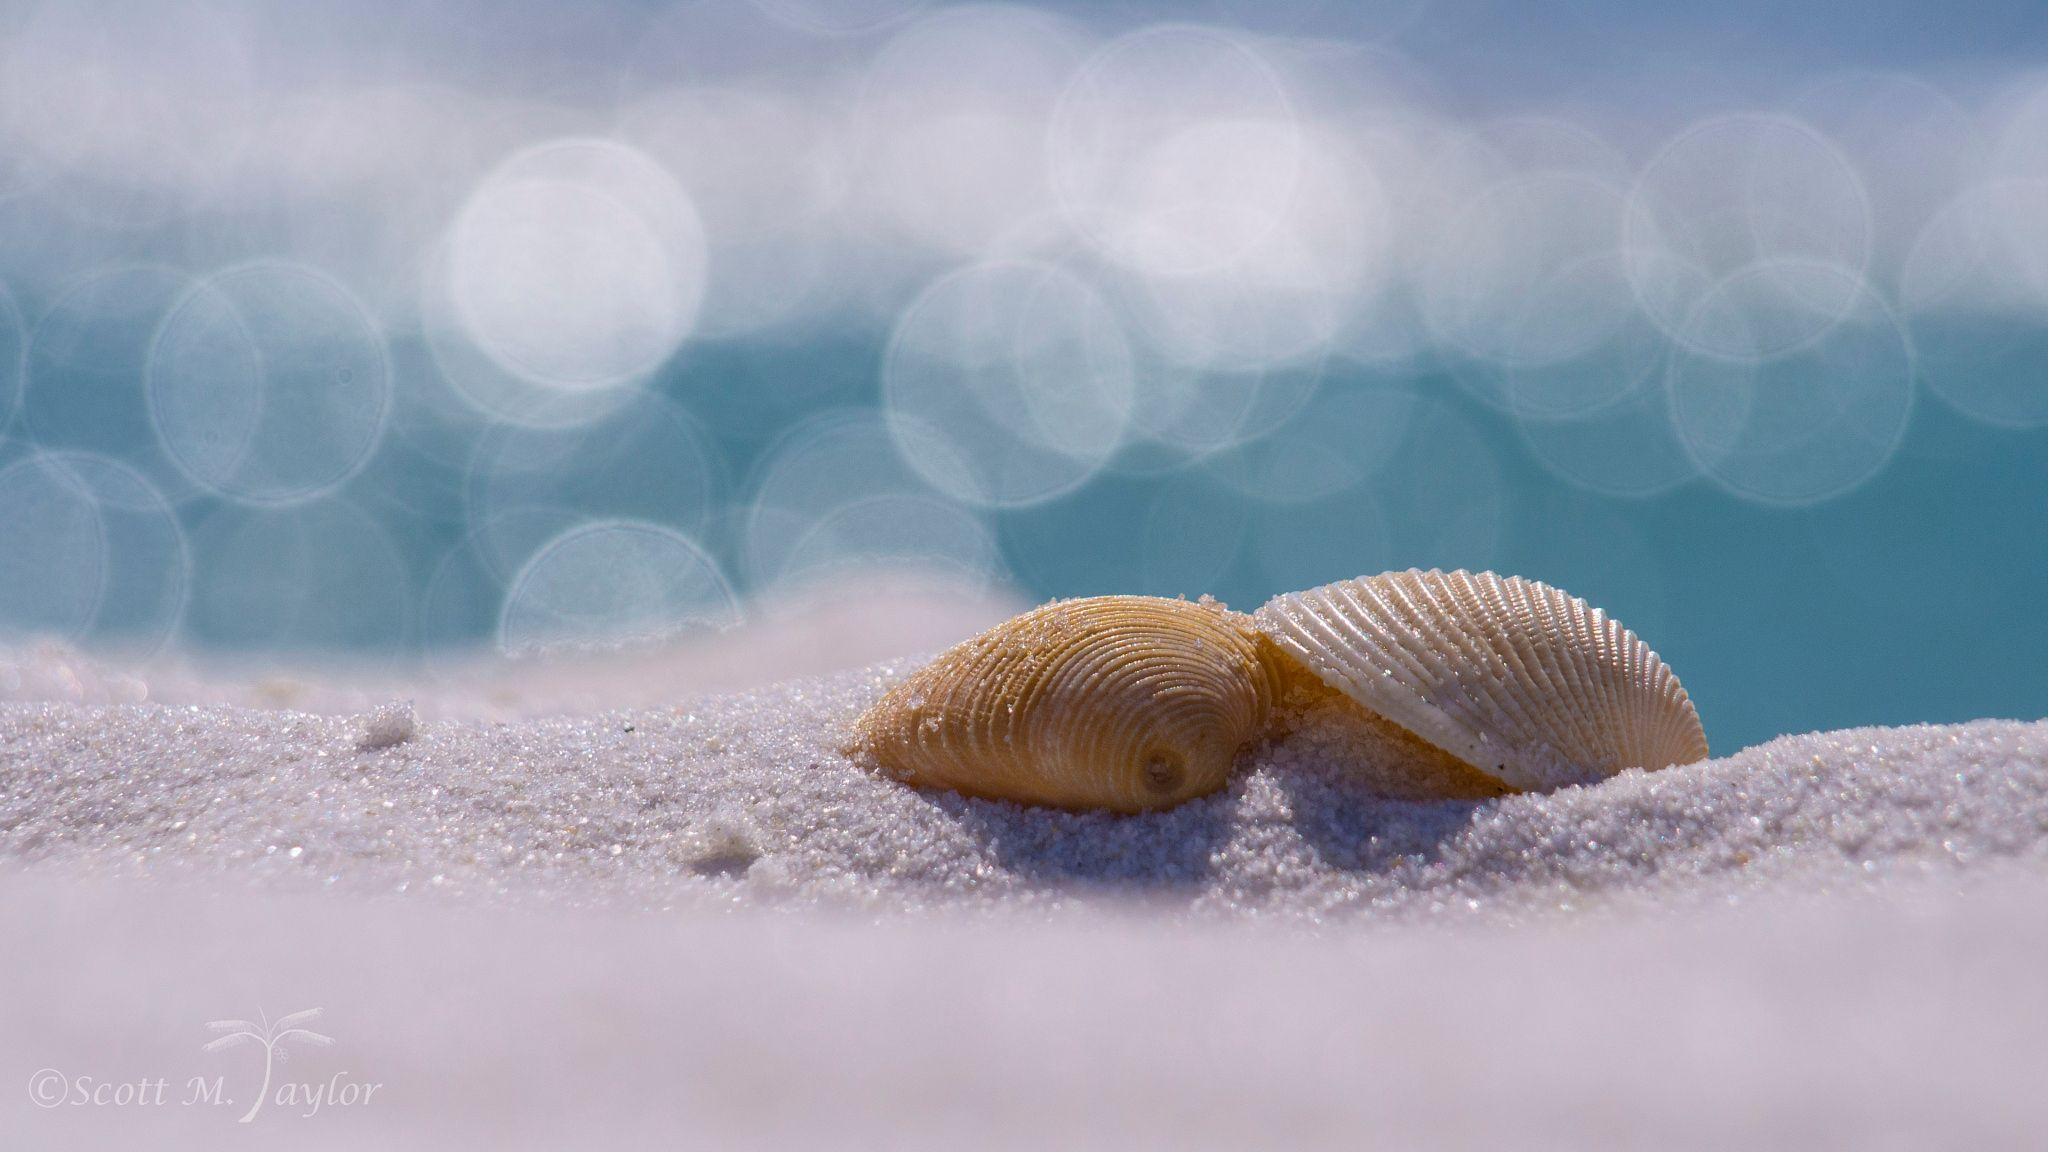 Sand Together - A pair of seashells, together in the sand